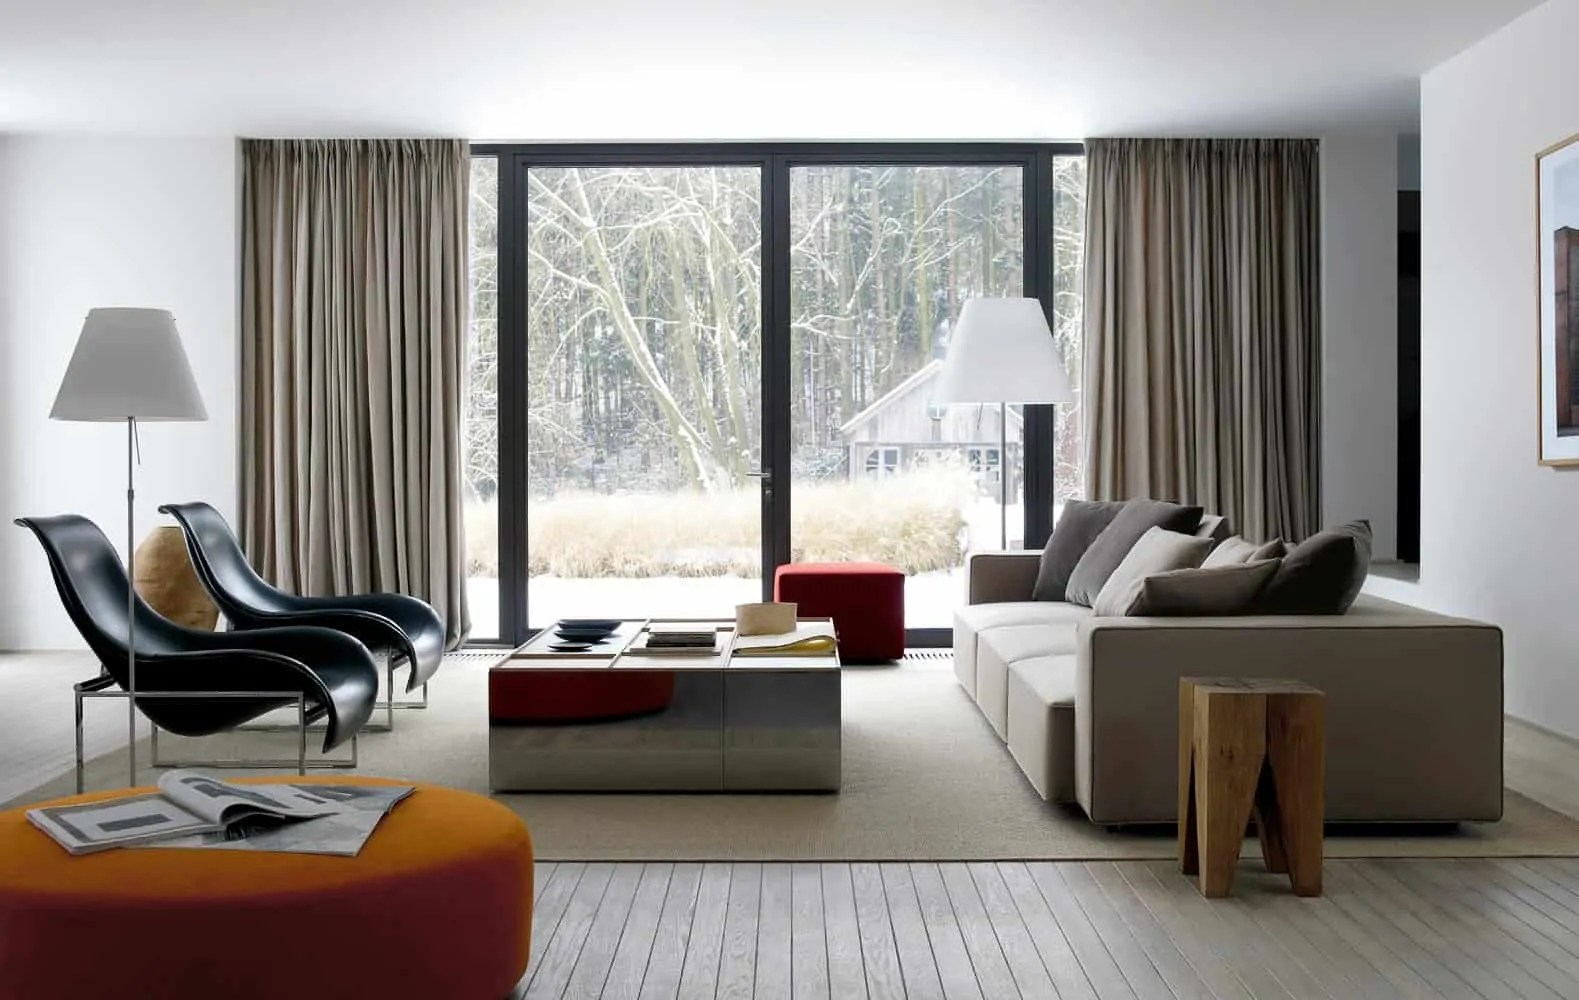 best modern furniture stores  monclerfactoryoutletscom - best modern furniture store best modern furniture stores usa design withinreach the best in